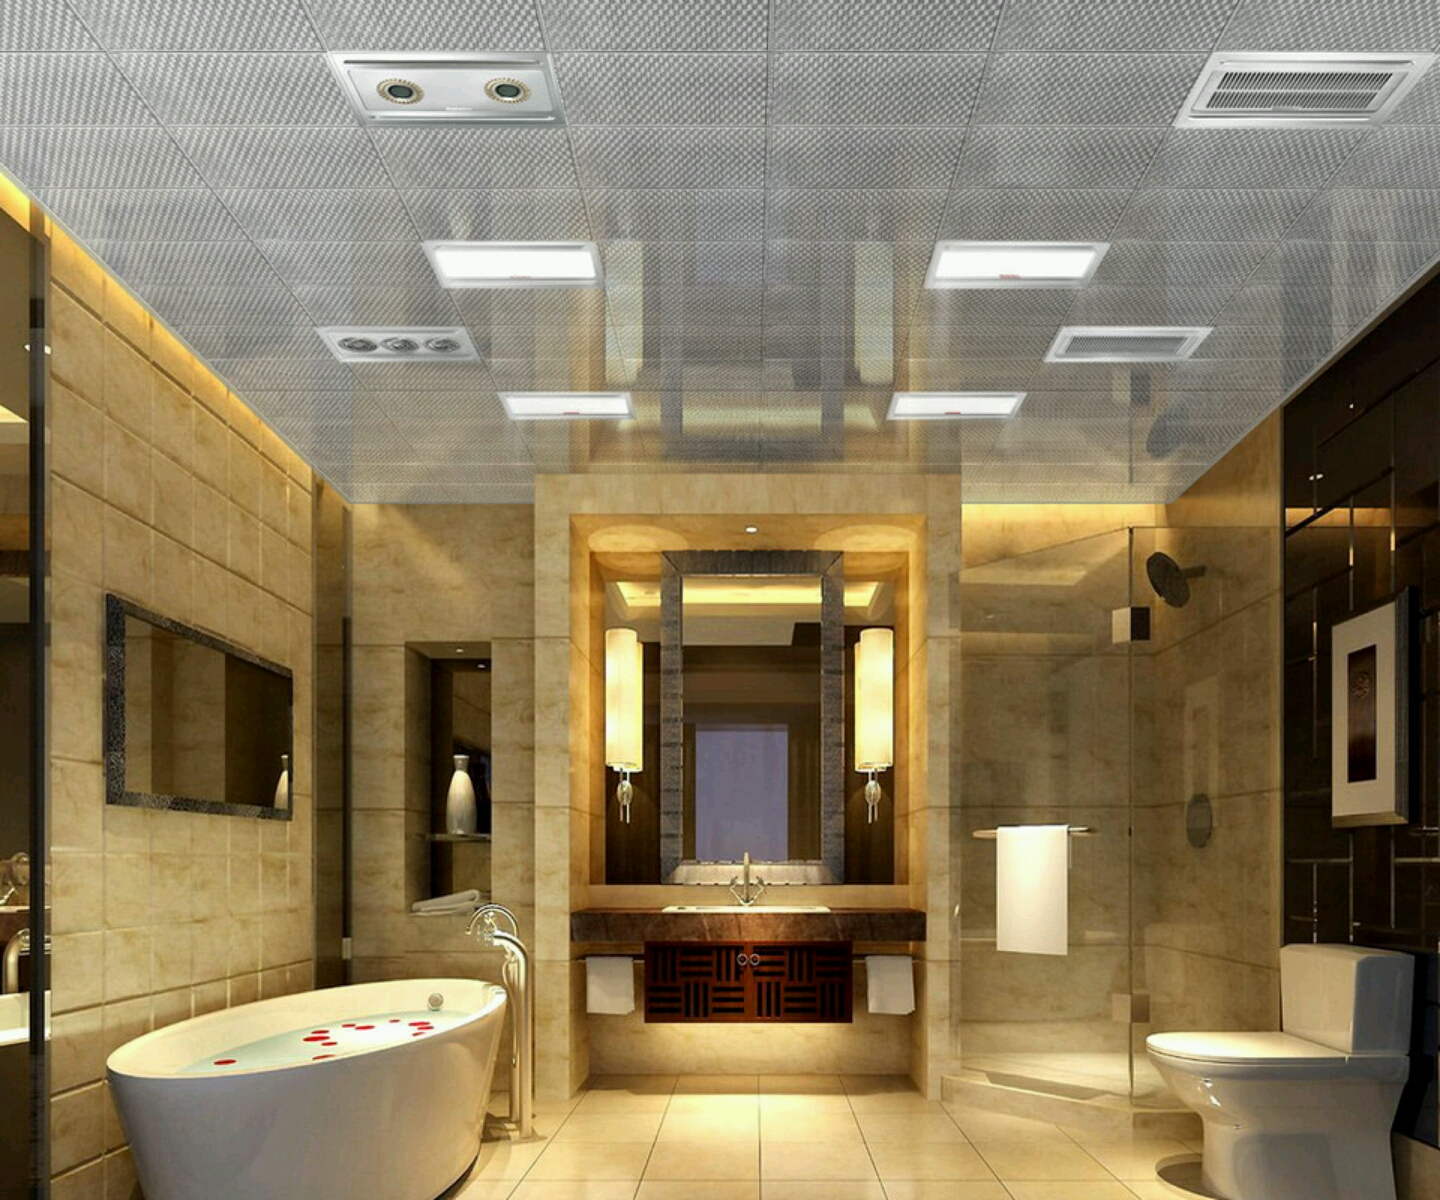 30 beautiful pictures and ideas high end bathroom tile designs for The best bathroom design